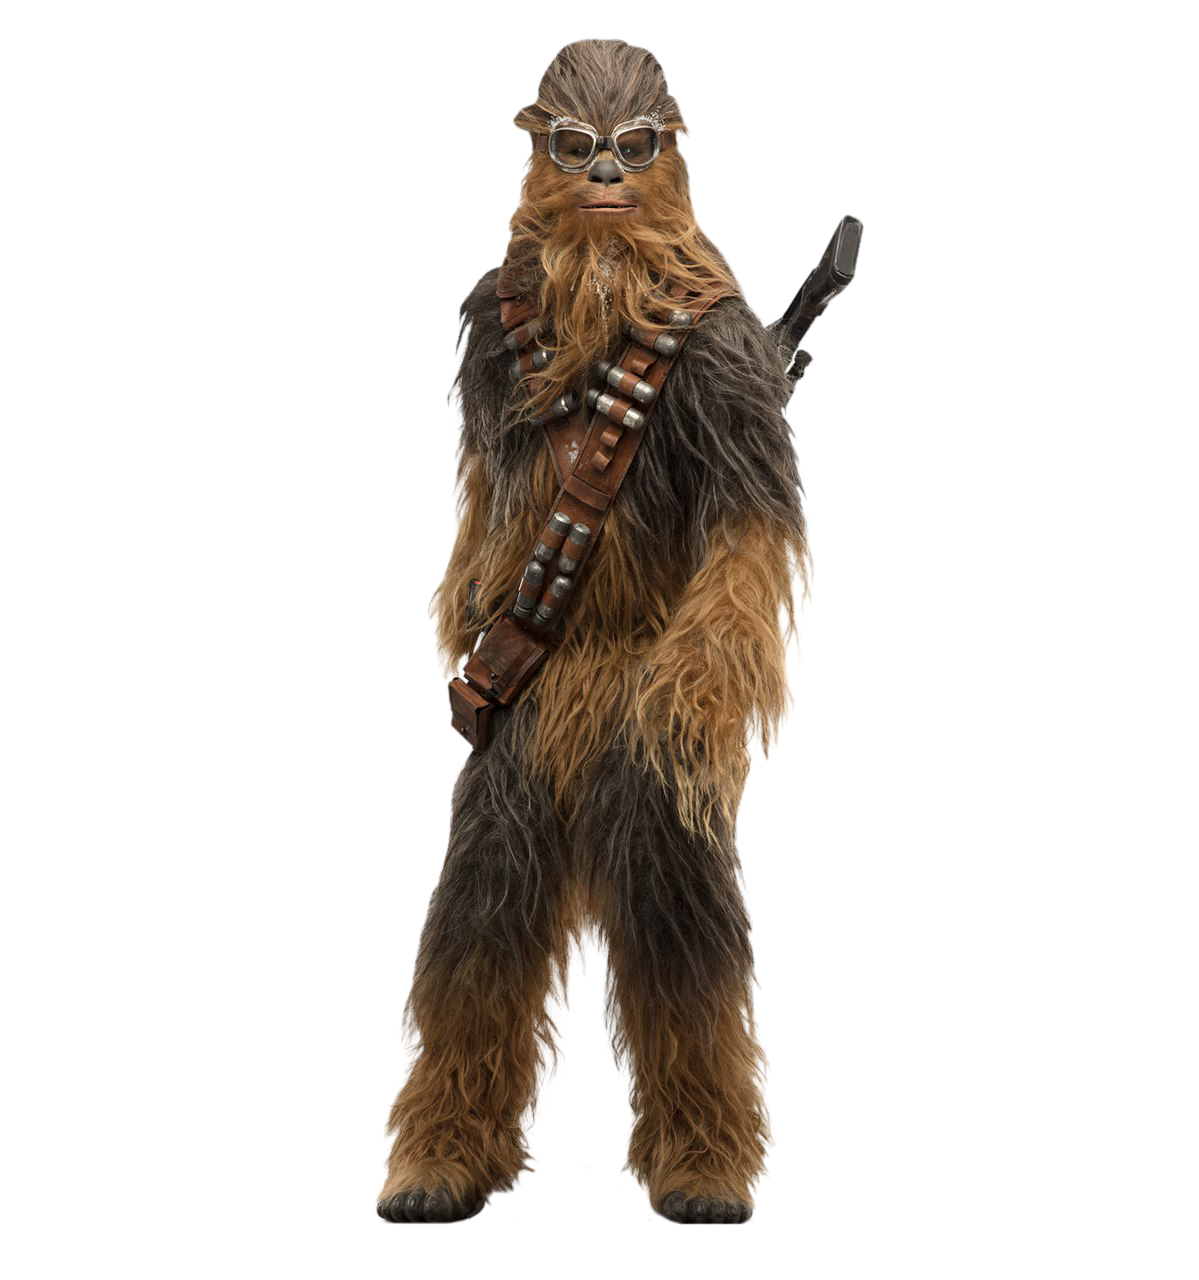 Star wars chewbacca png. Solo a story cut